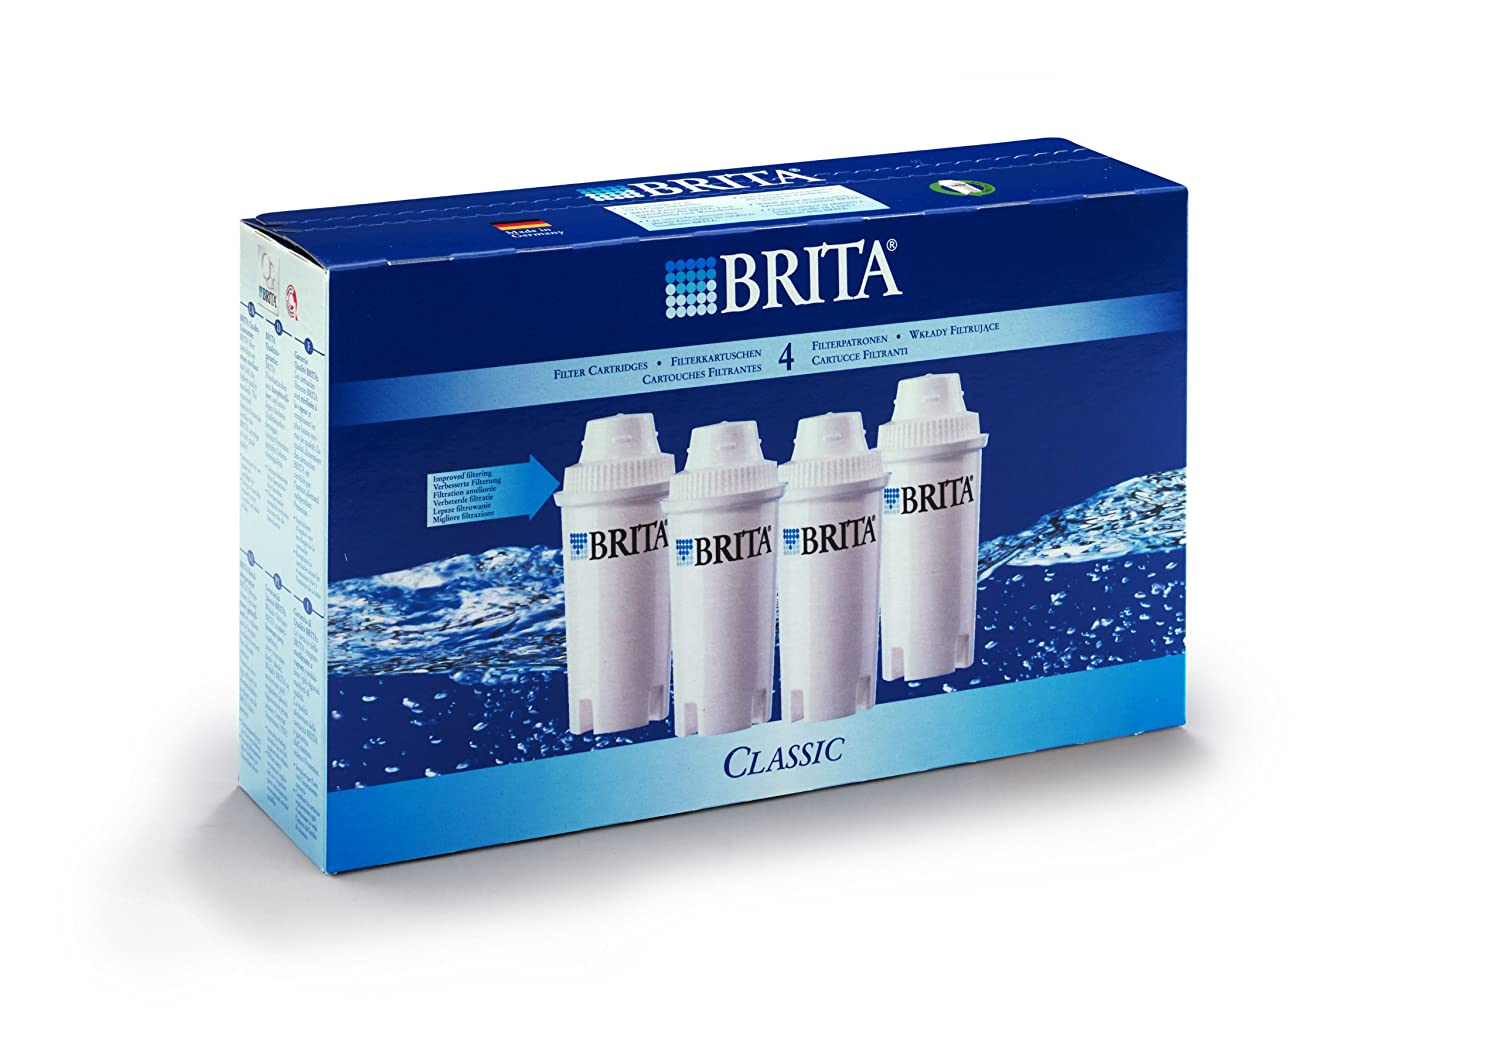 BRITA Classic Water Filter Cartridges - 3 Pack S1231 Water Heaters kettles kitchen appliances